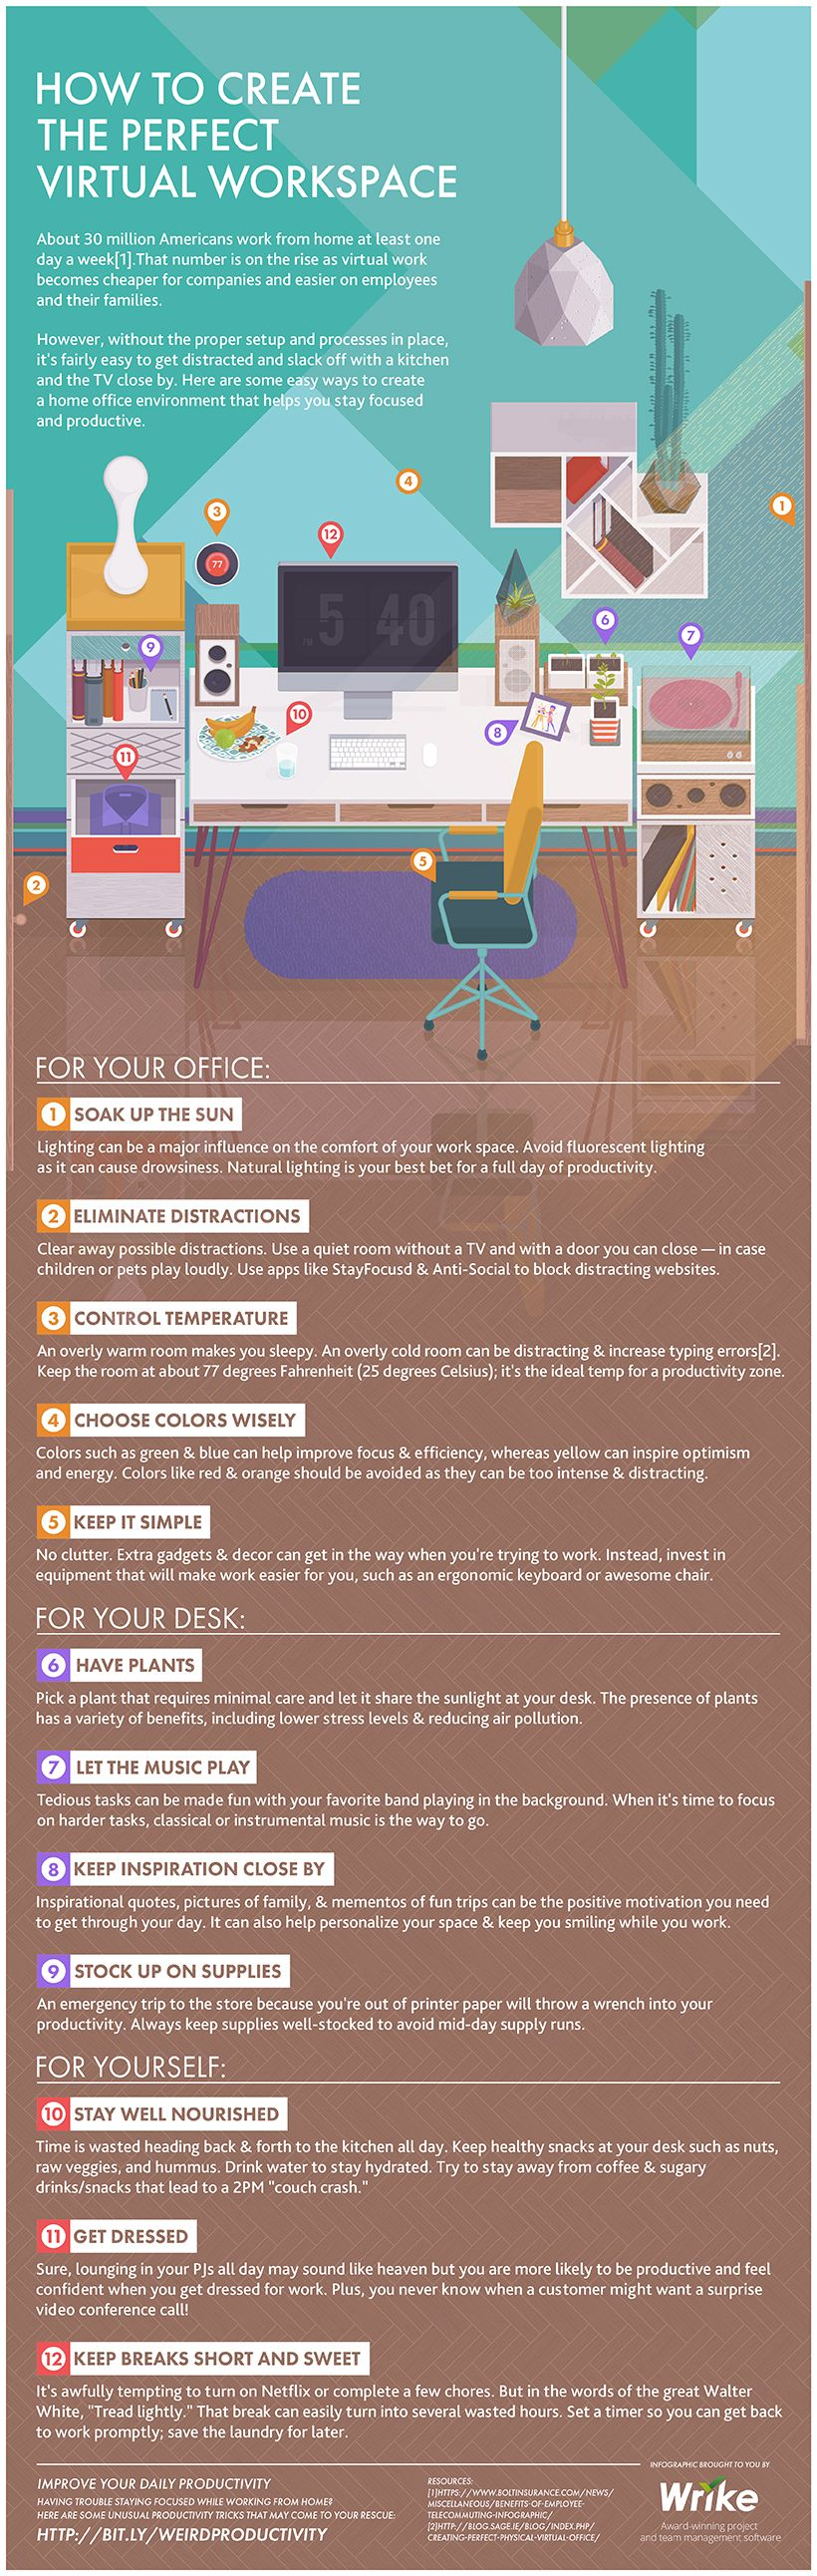 How to Create The Perfect Virtual Workspace #Infographic